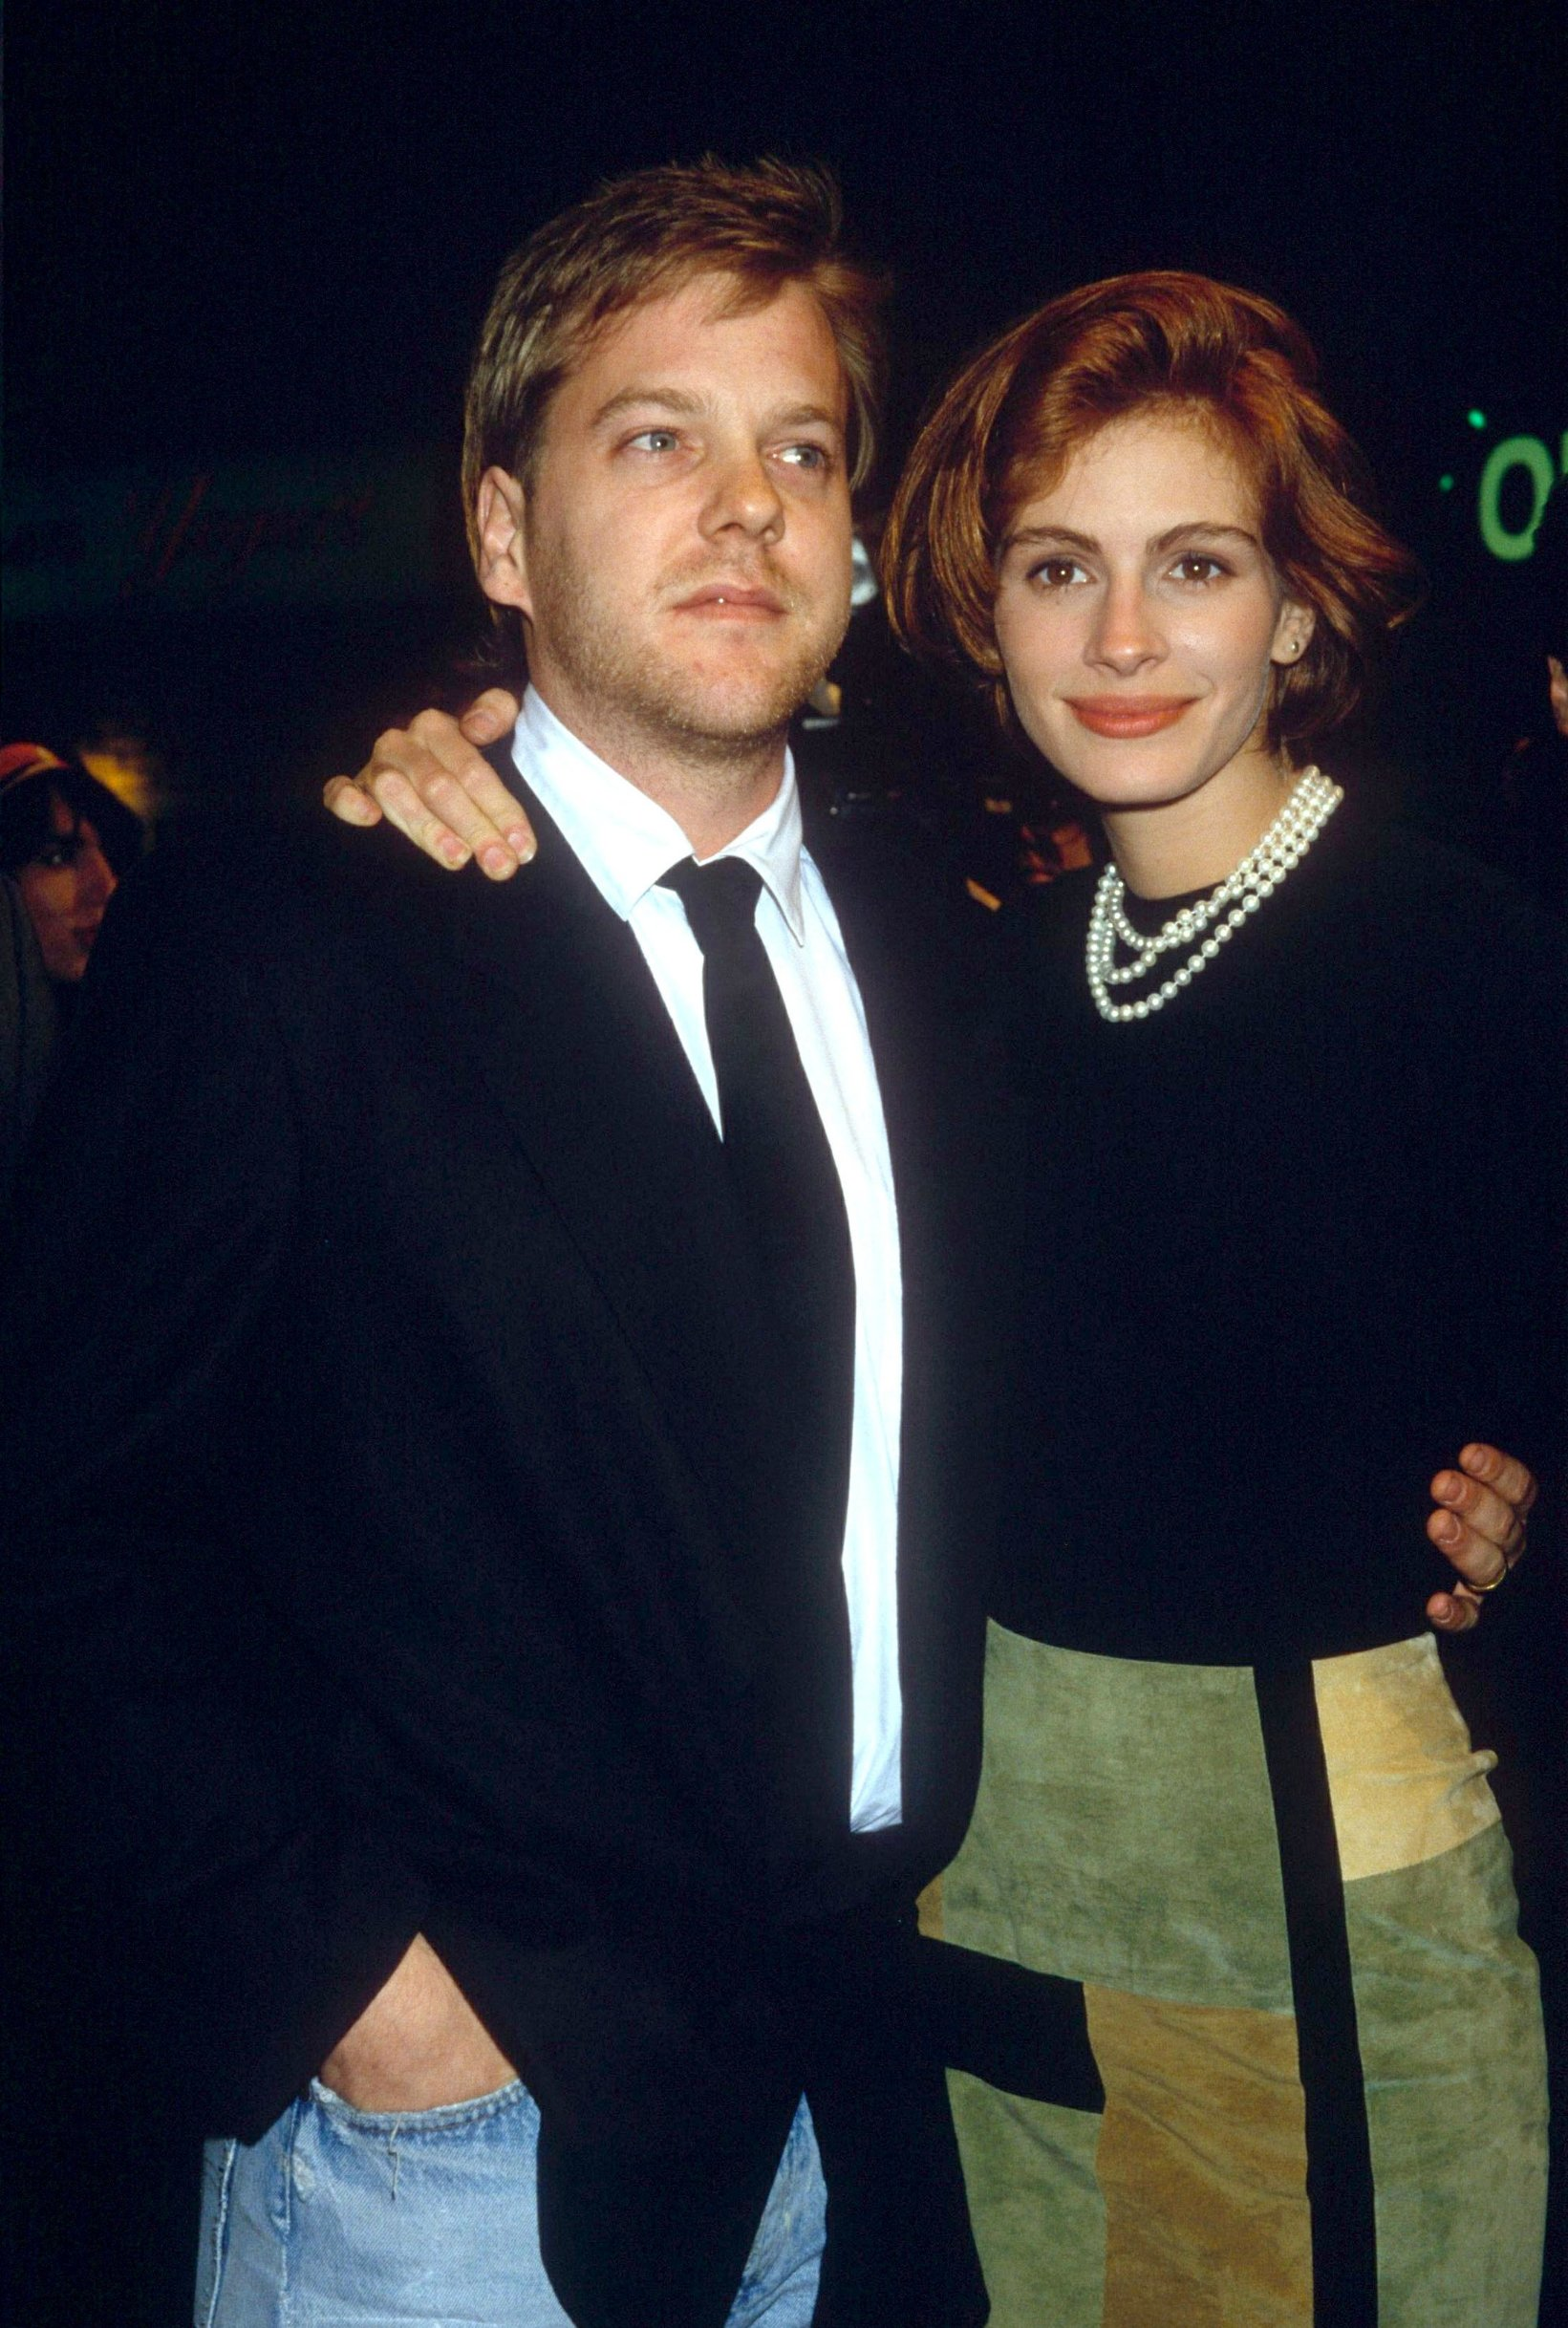 KIEFER SUTHERLAND AND JULIA ROBERTS PREMIERE OF FILM 'SLEEPING WITH THE ENEMY' IN CALIFORNIA,  AMERICA - 1991, Image: 221284300, License: Rights-managed, Restrictions: , Model Release: no, Credit line: Profimedia, Shutterstock Editorial